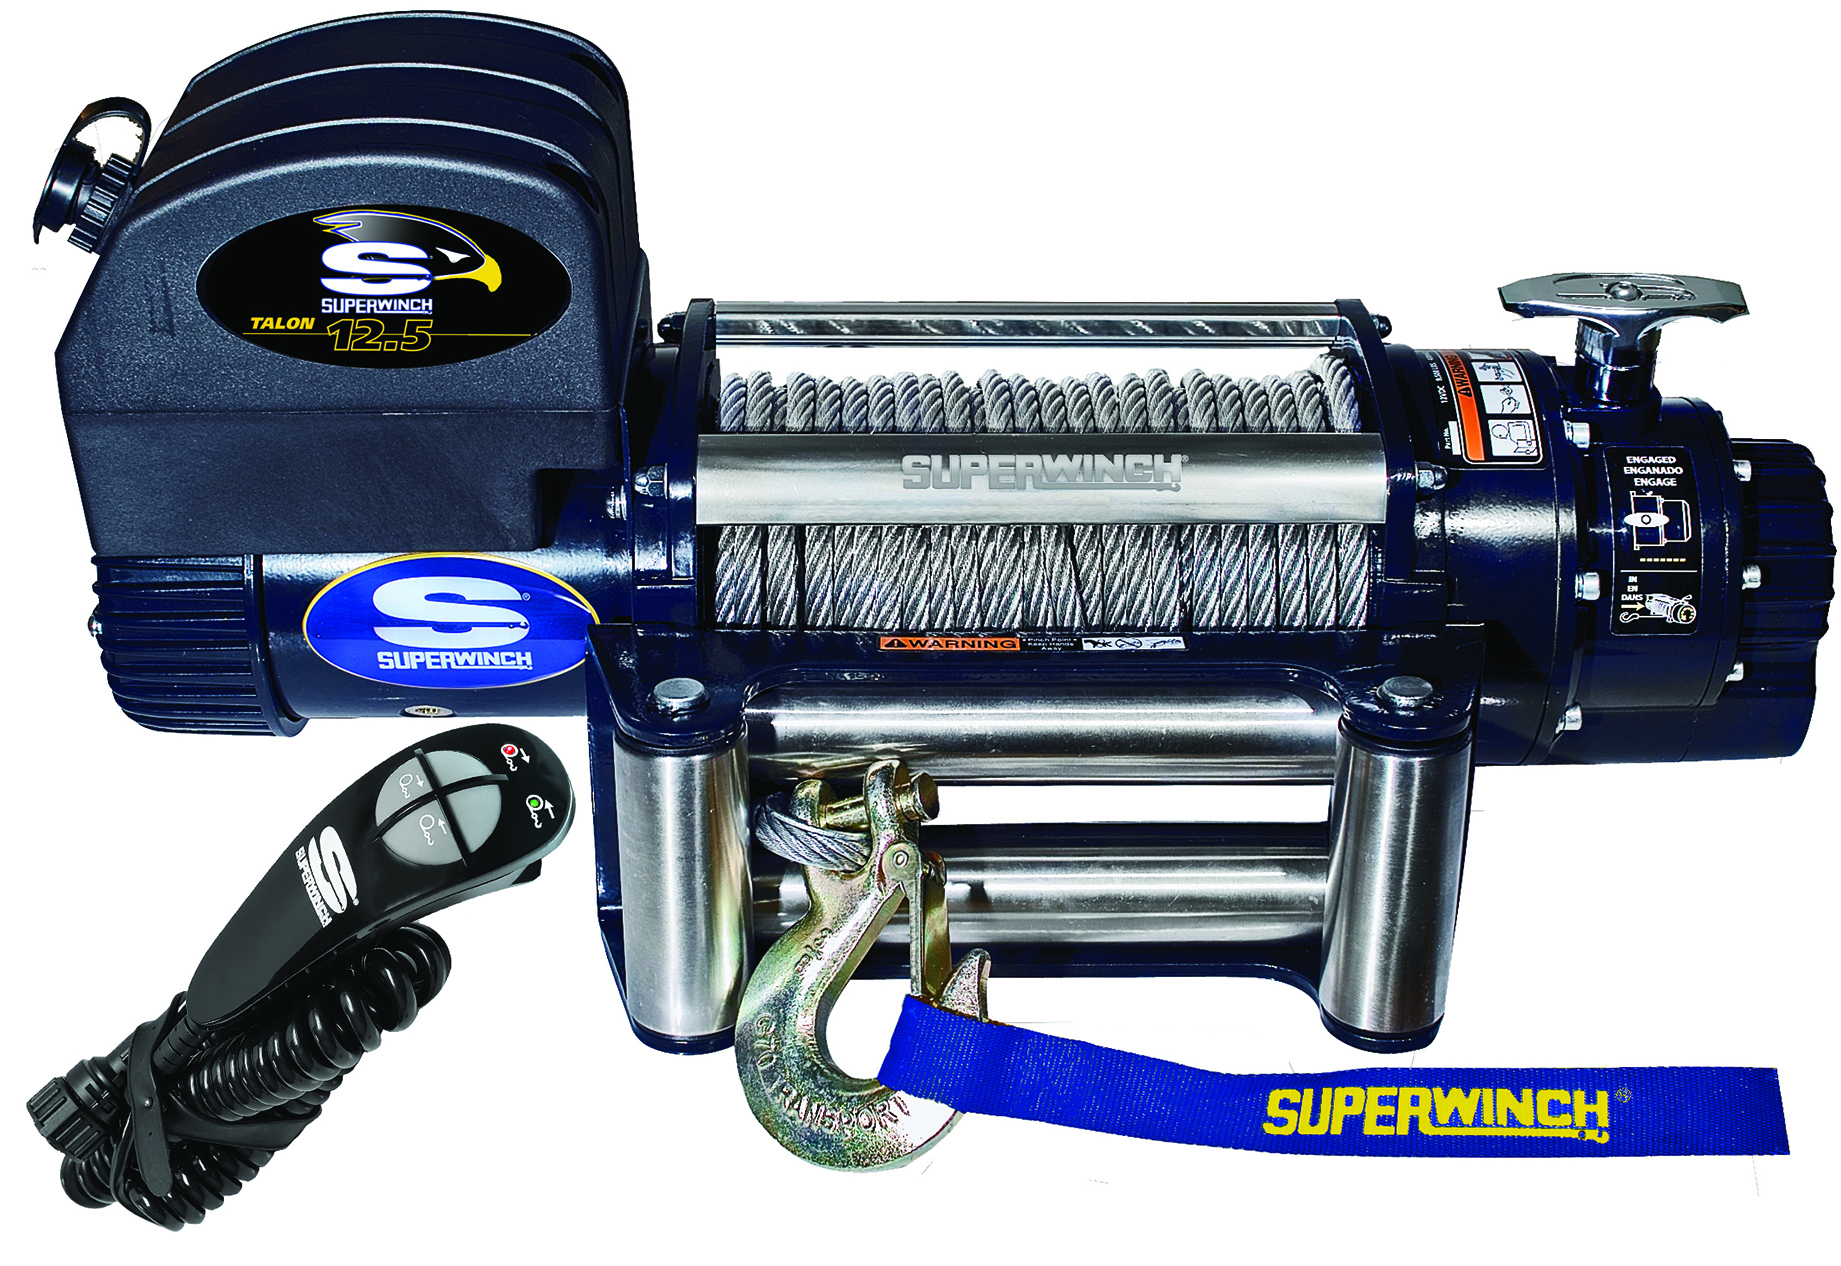 Winches agents stock of superwinch 4 4 winch for Electric motor winder jobs in saudi arabia